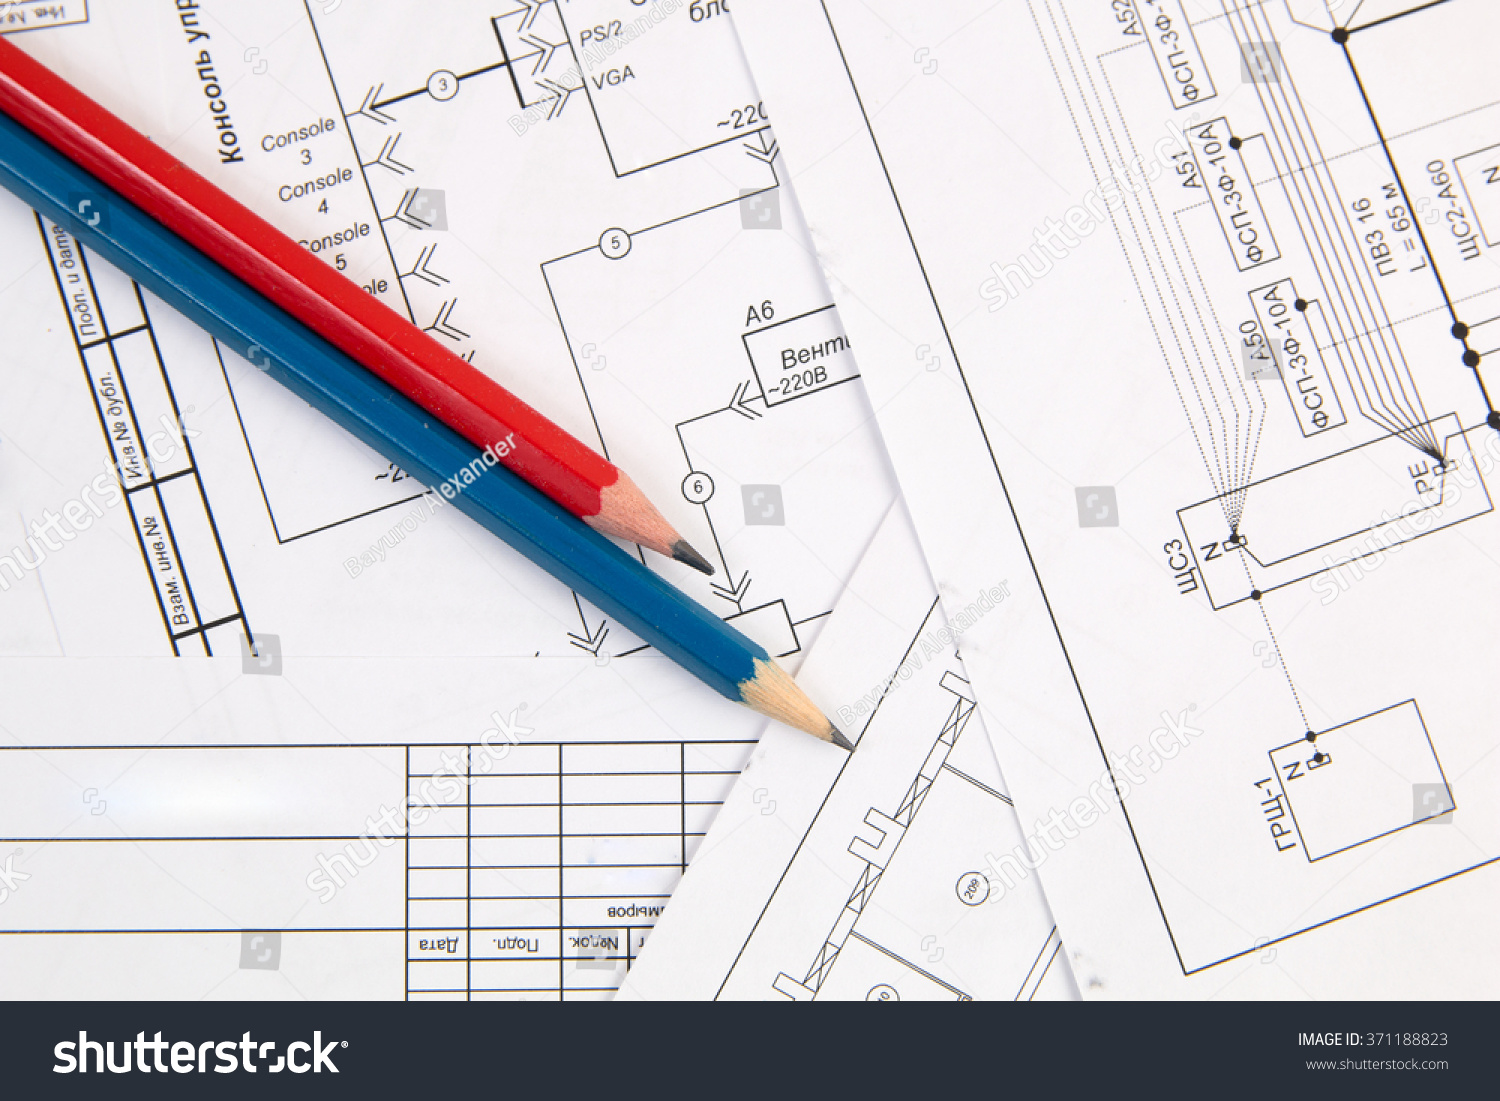 Electrical Engineering Drawings Printing And Pencils Ez Canvas Plan Id 371188823